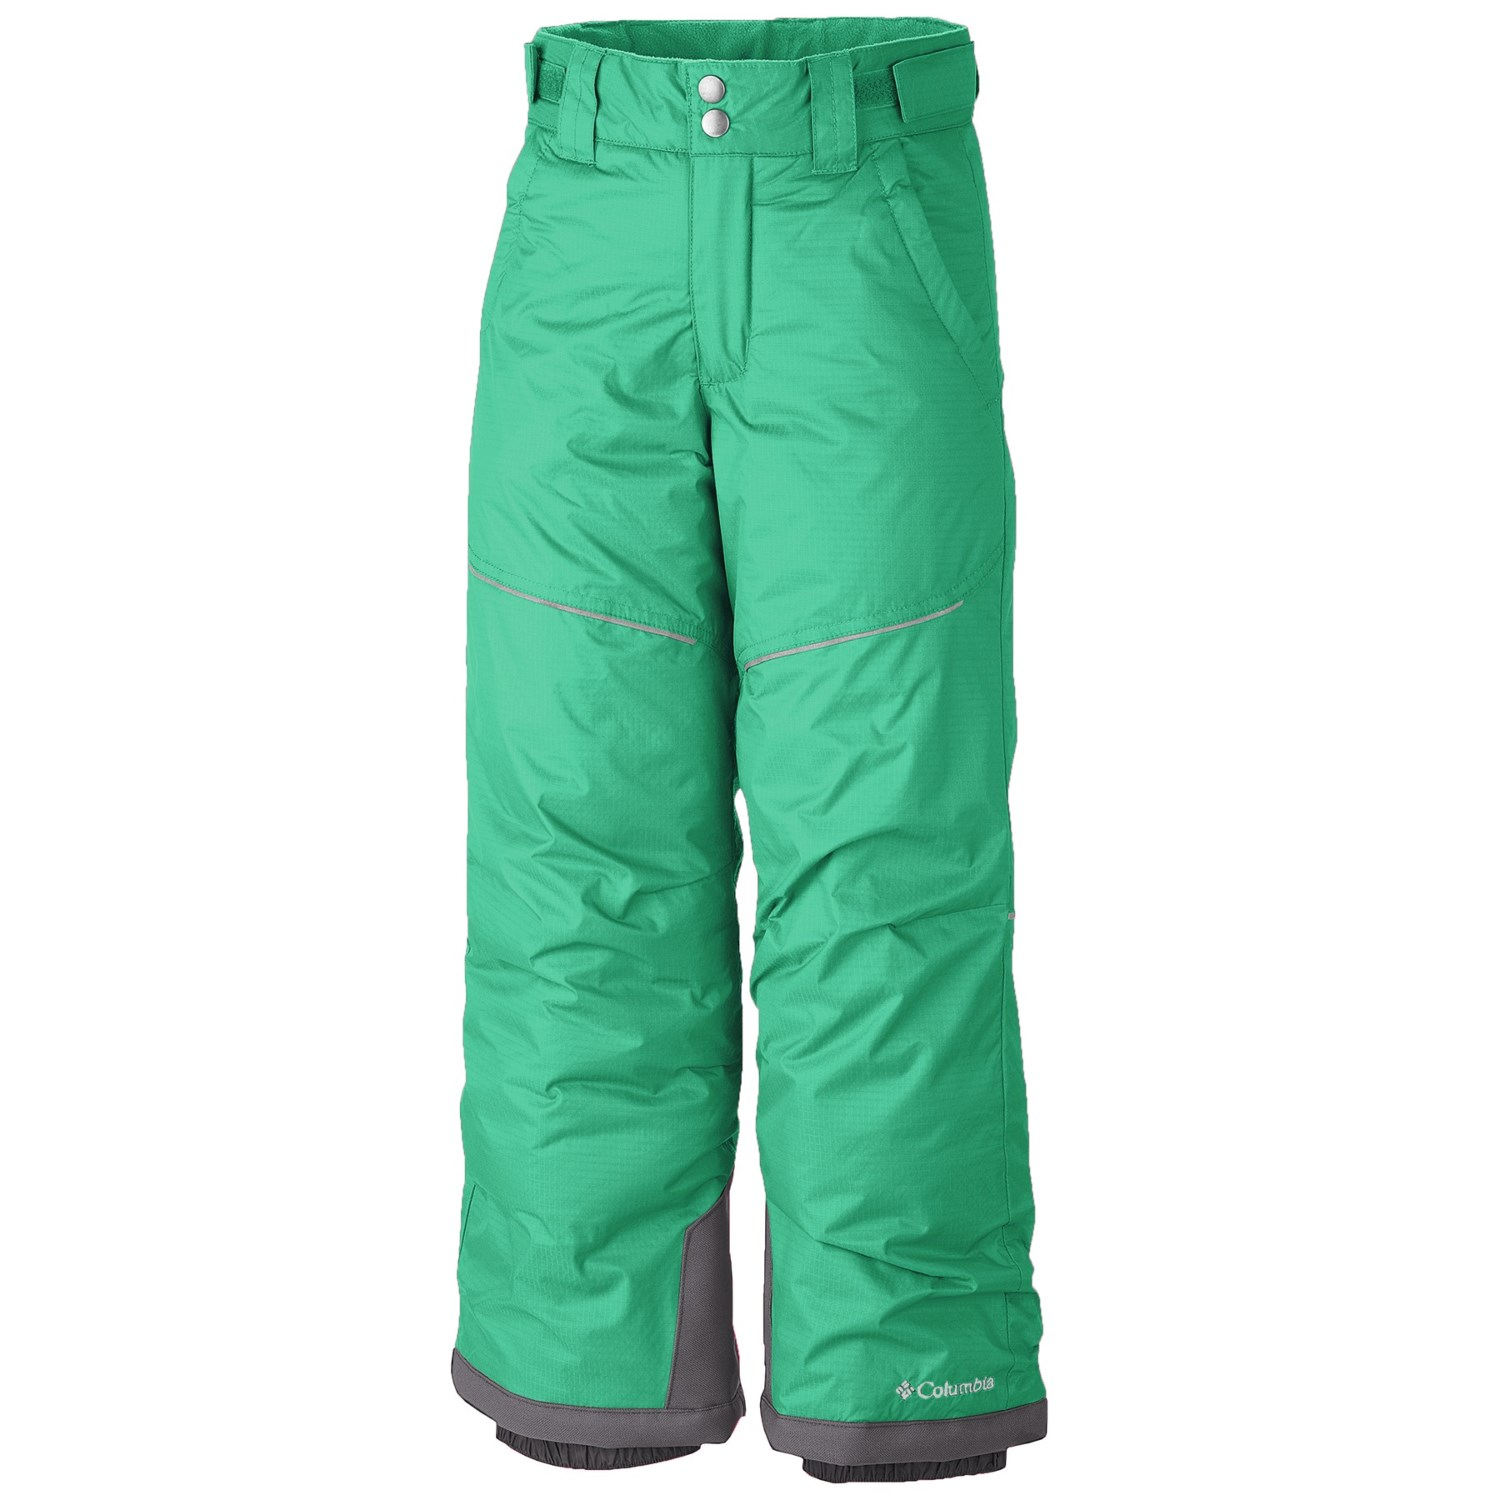 Shop Lands' End's girls snow pants and snow bibs to find warm snow gear for your child. From toddler girls snow pants to girls' ski pants for tweens, we have it!